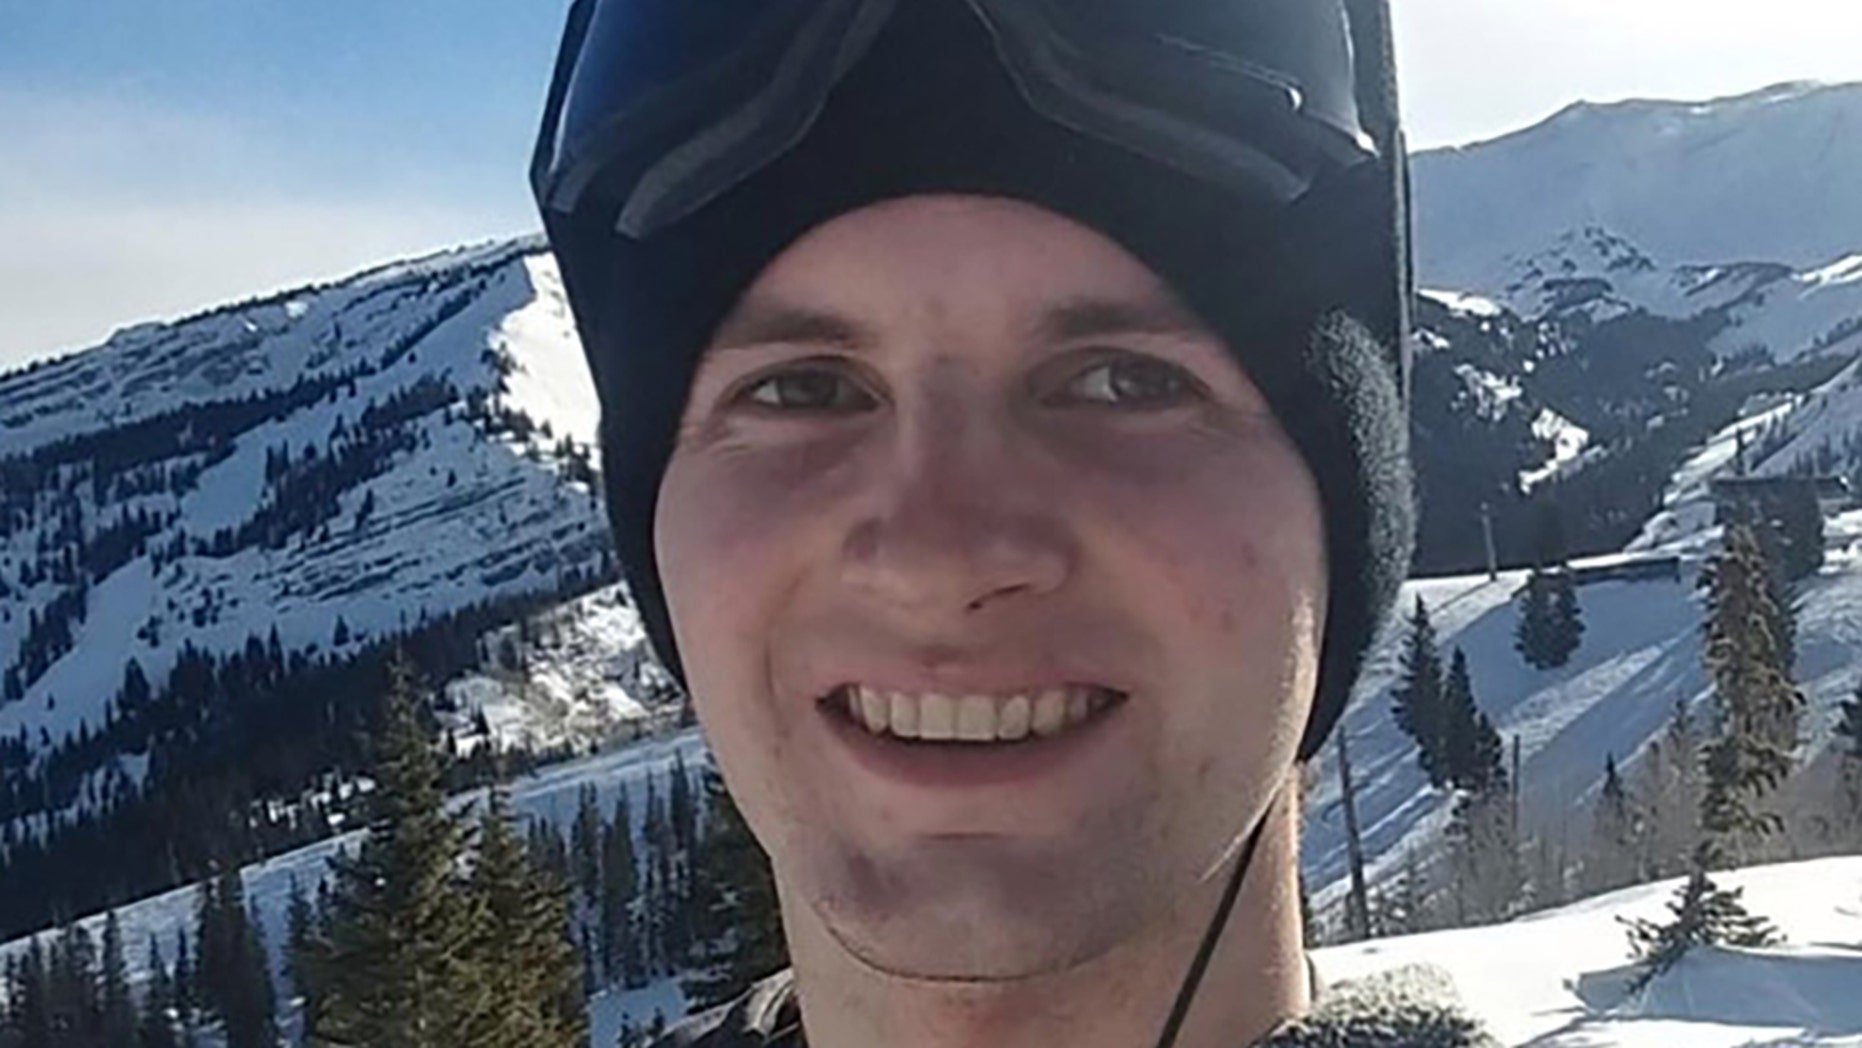 Tyler Hamm died in a snowboarding accident on Sunday.